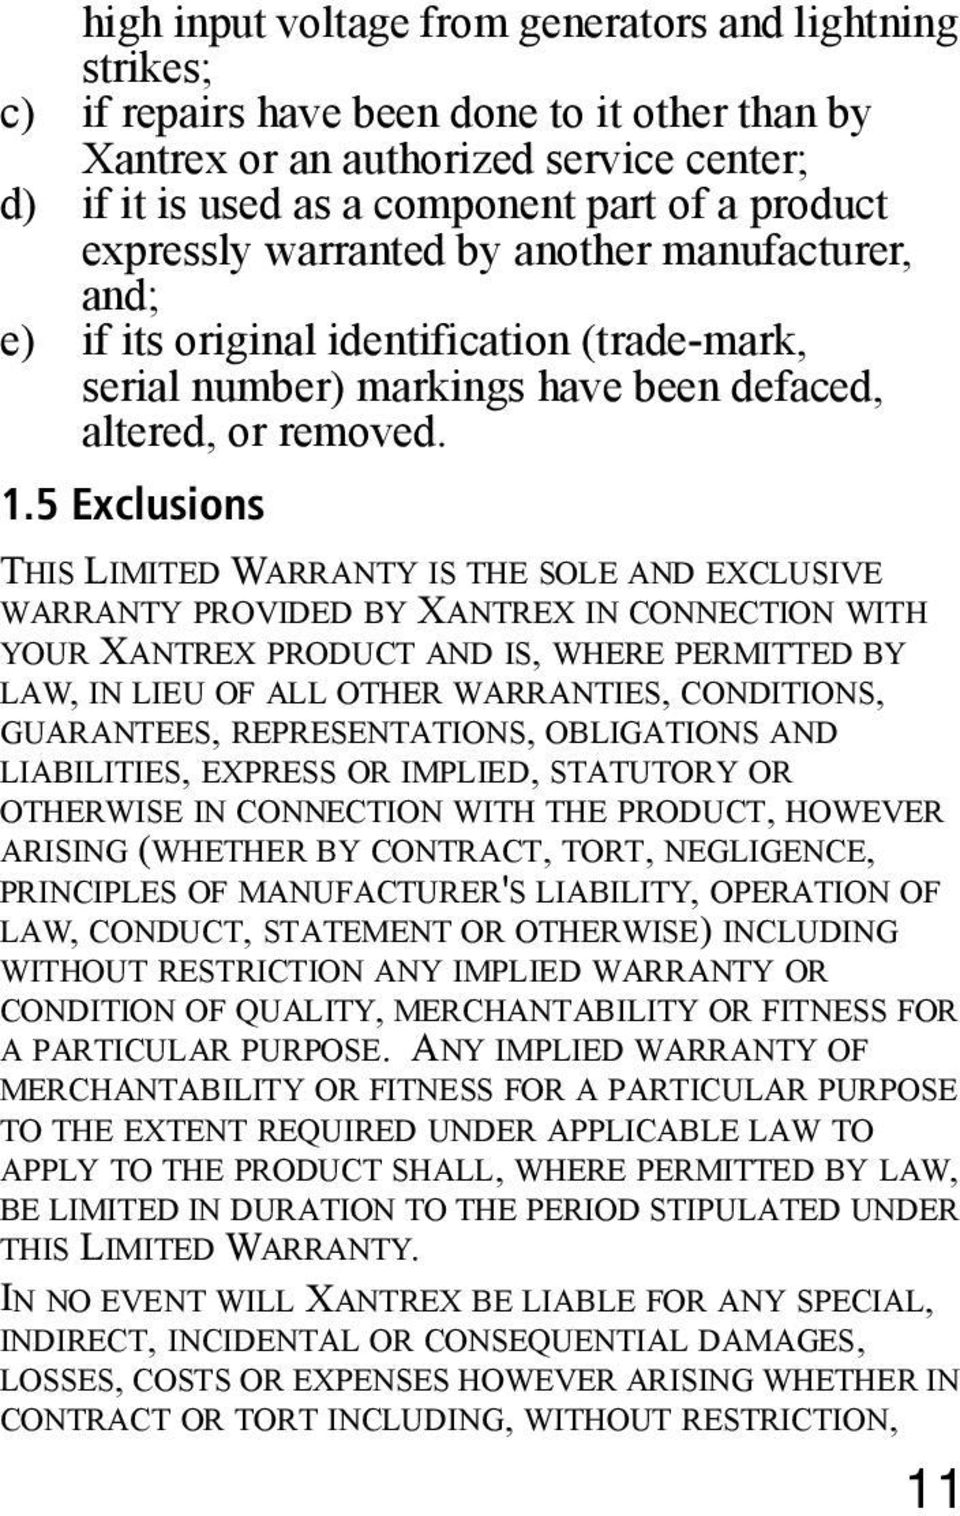 5 Exclusions THIS LIMITED WARRANTY IS THE SOLE AND EXCLUSIVE WARRANTY PROVIDED BY XANTREX IN CONNECTION WITH YOUR XANTREX PRODUCT AND IS, WHERE PERMITTED BY LAW, IN LIEU OF ALL OTHER WARRANTIES,